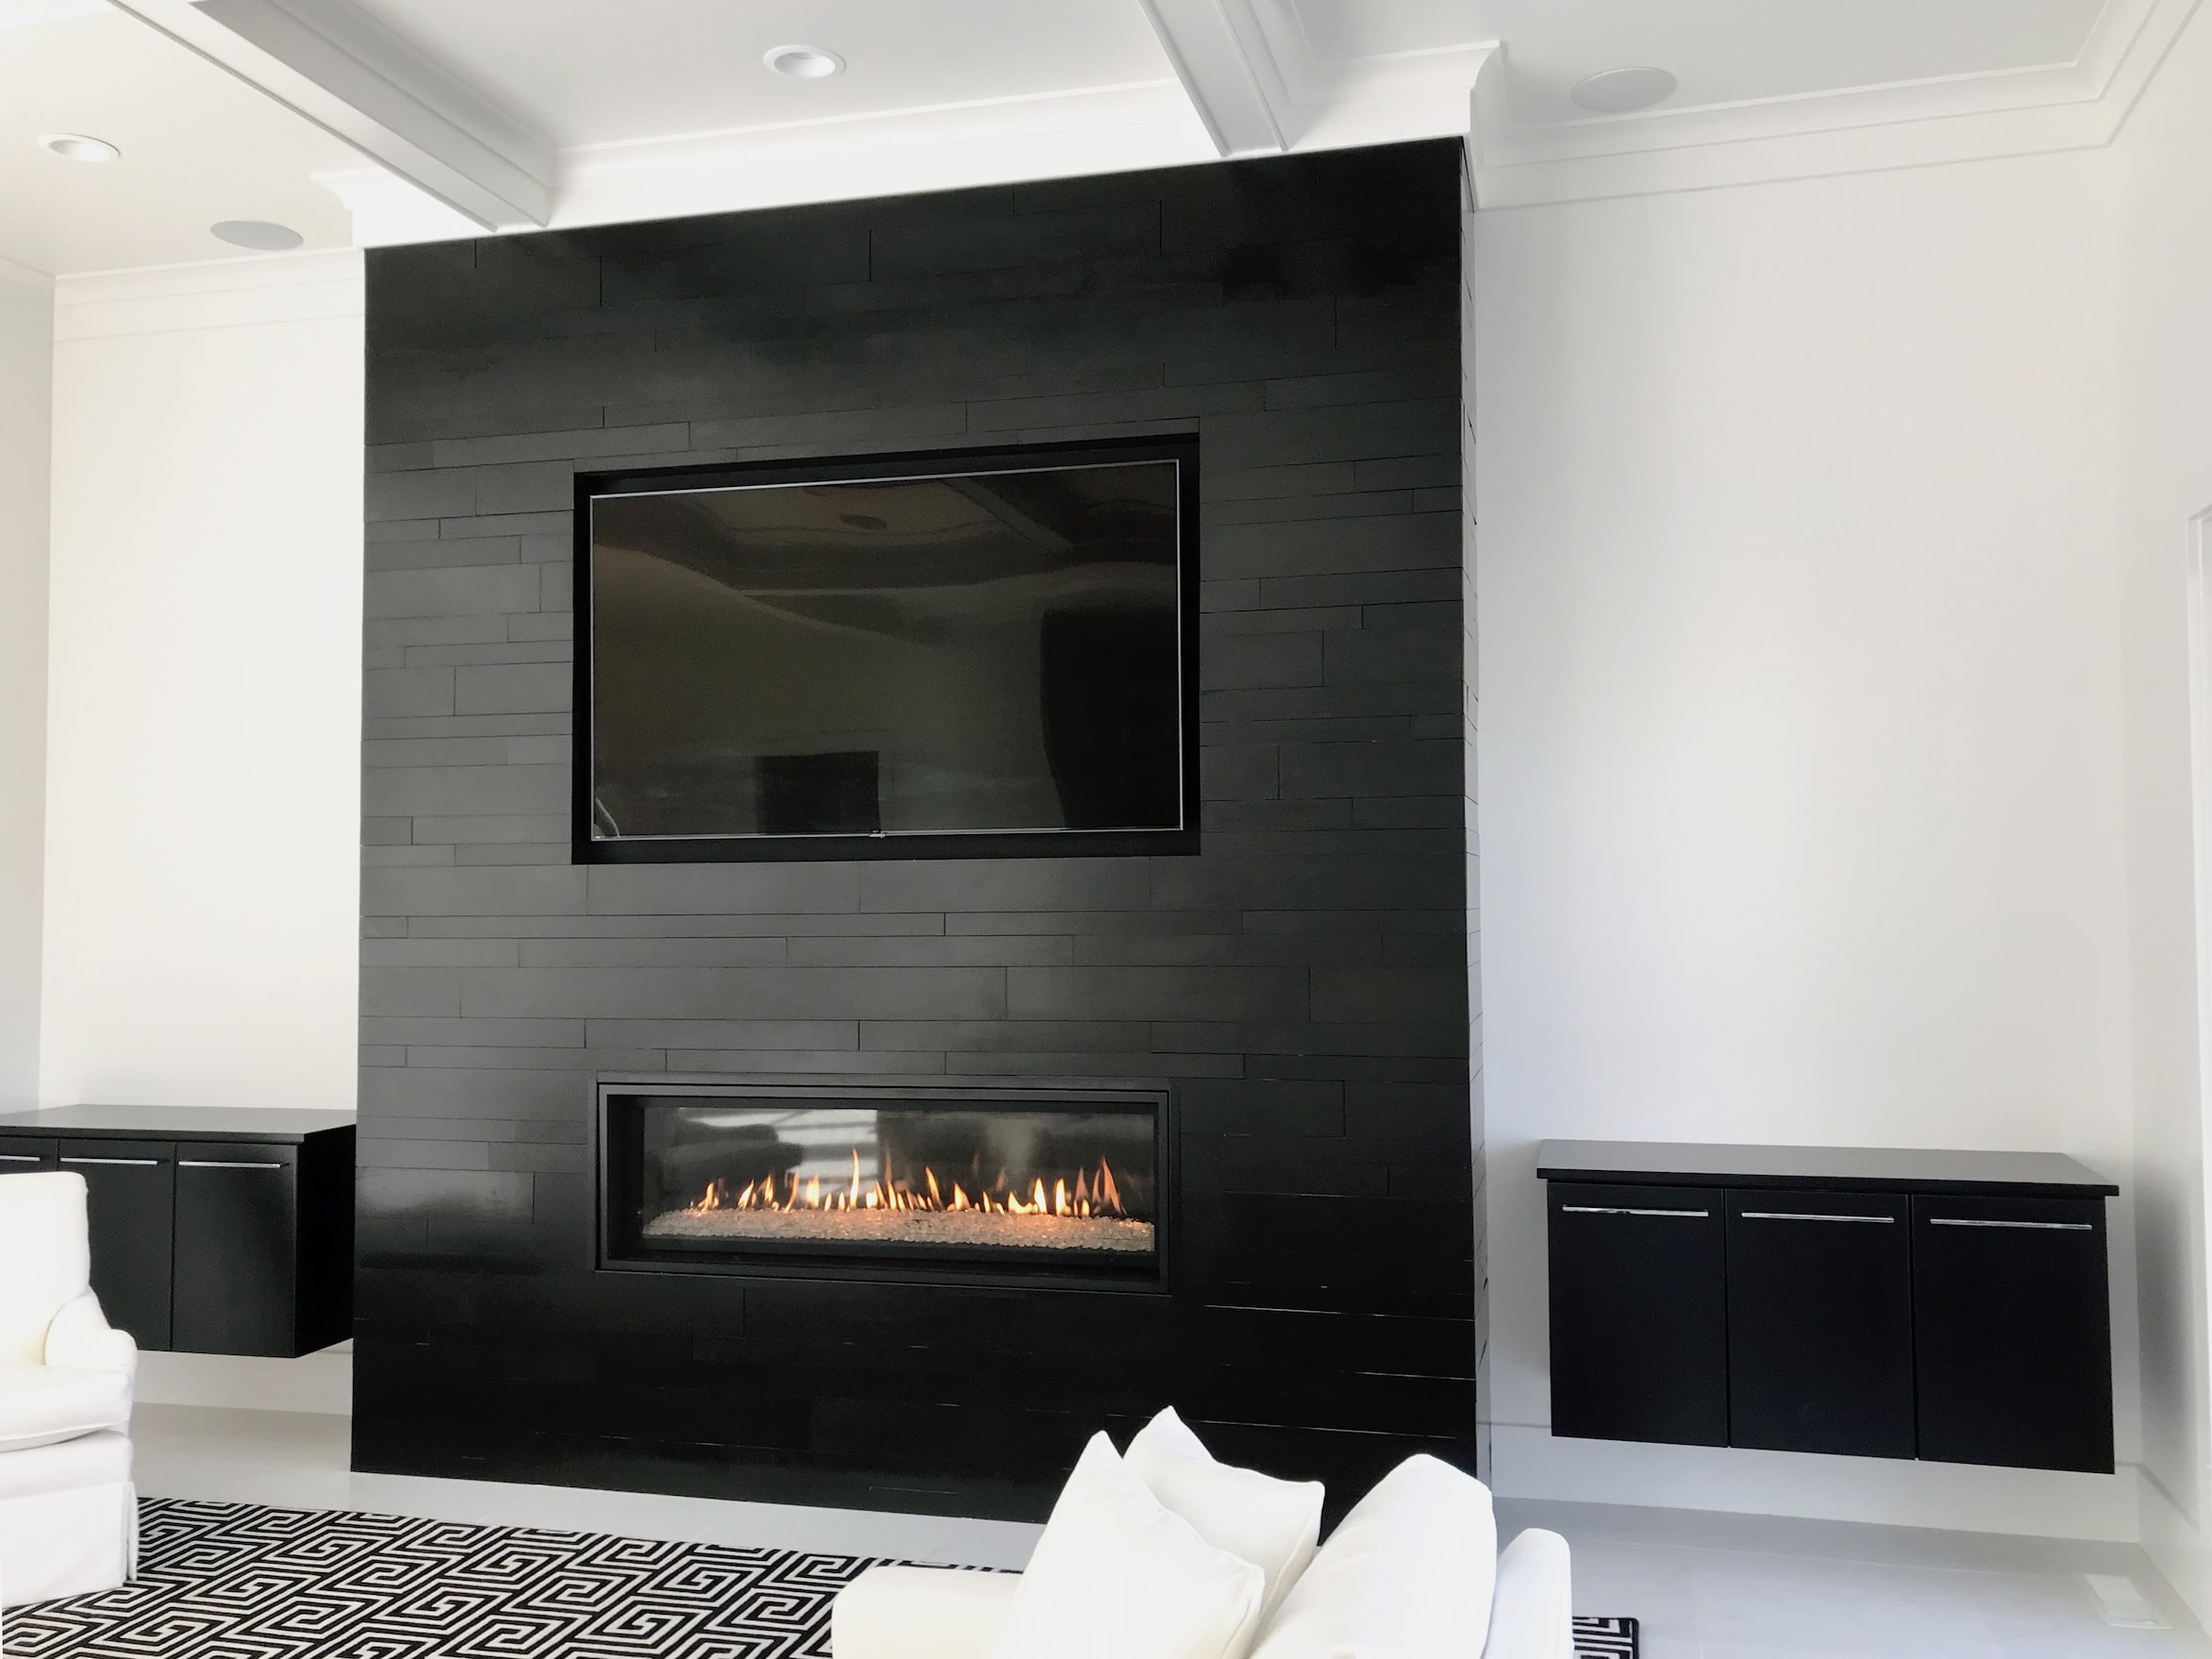 Norstone Planc Large Format Tiles in Ebony installed on a modern fireplace with linear gas insert and tv recess